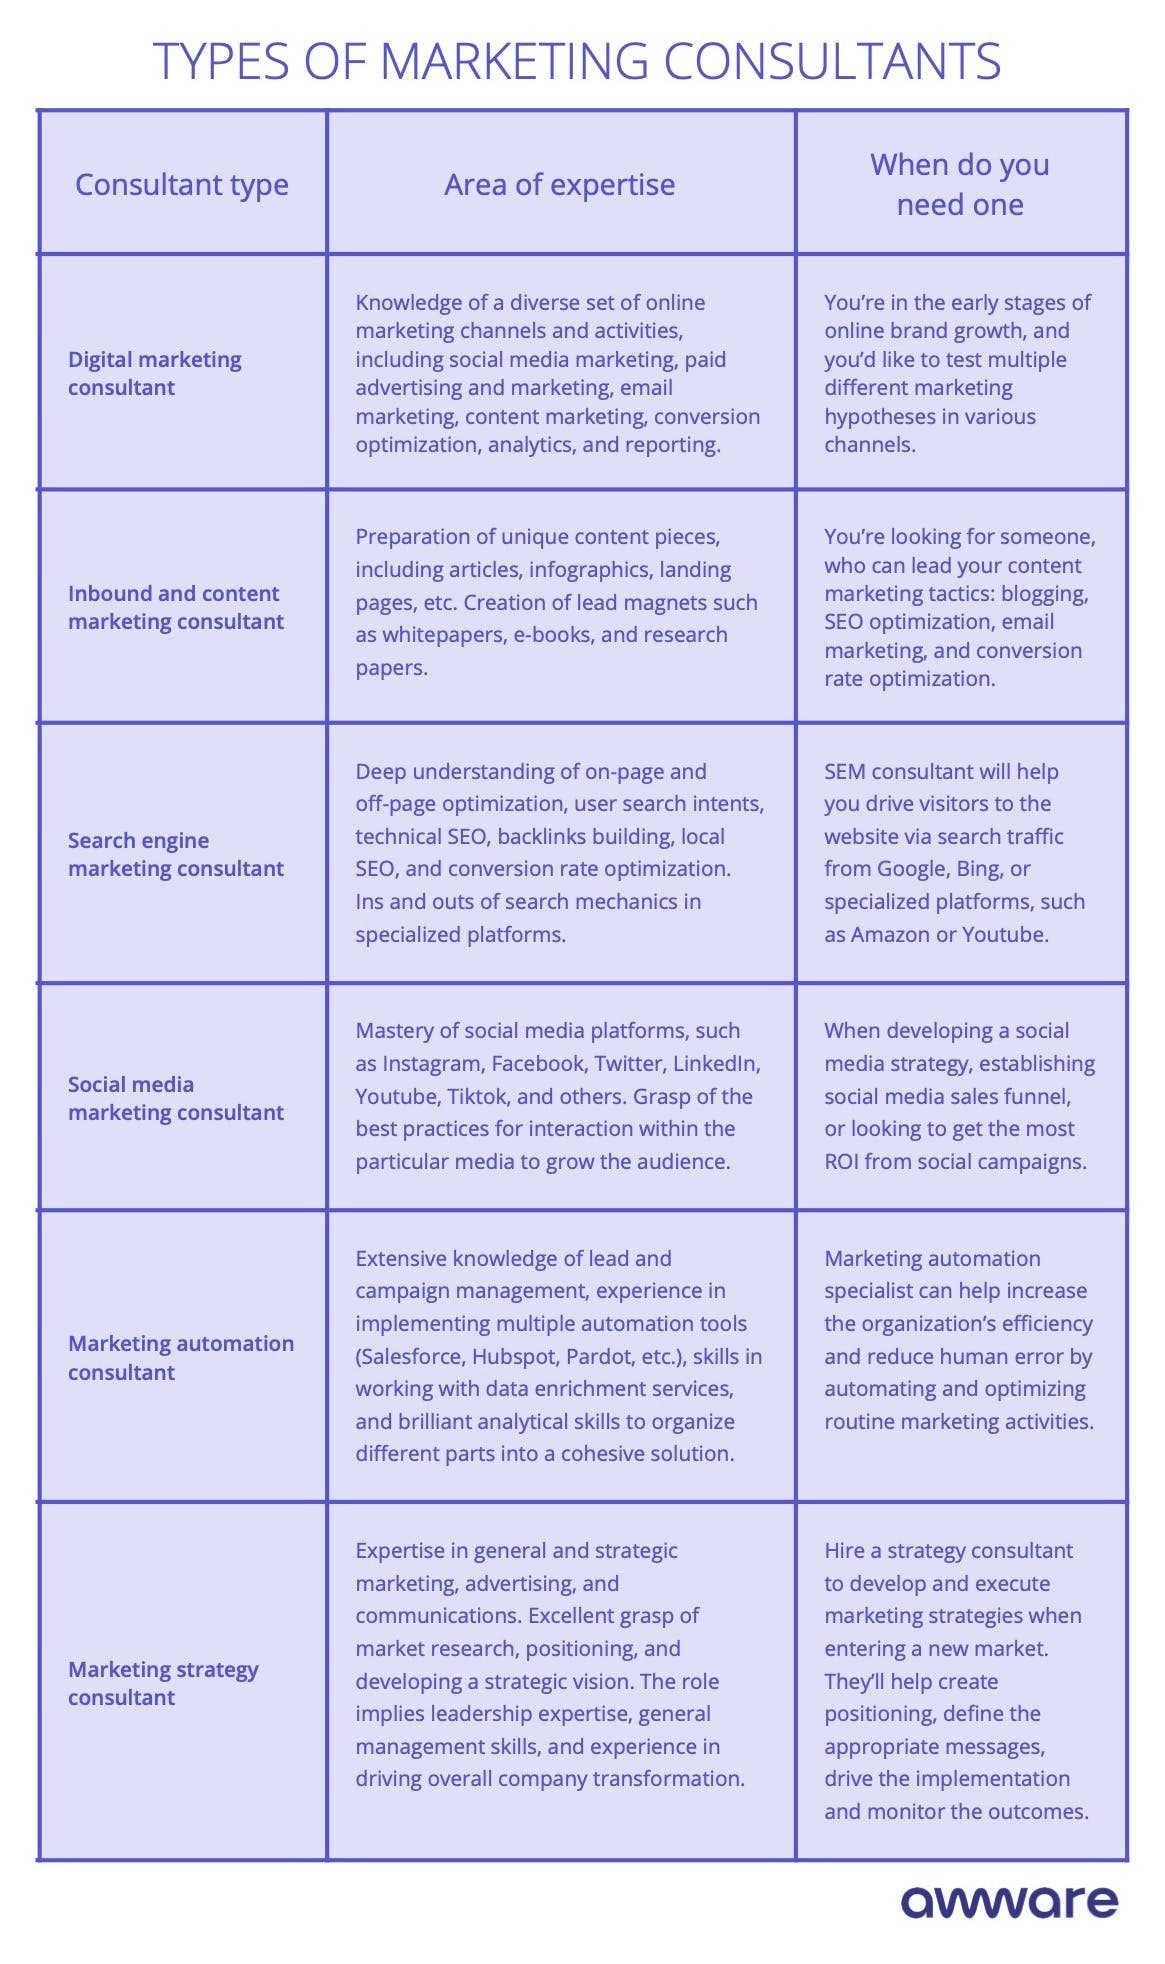 Types of marketing consultants